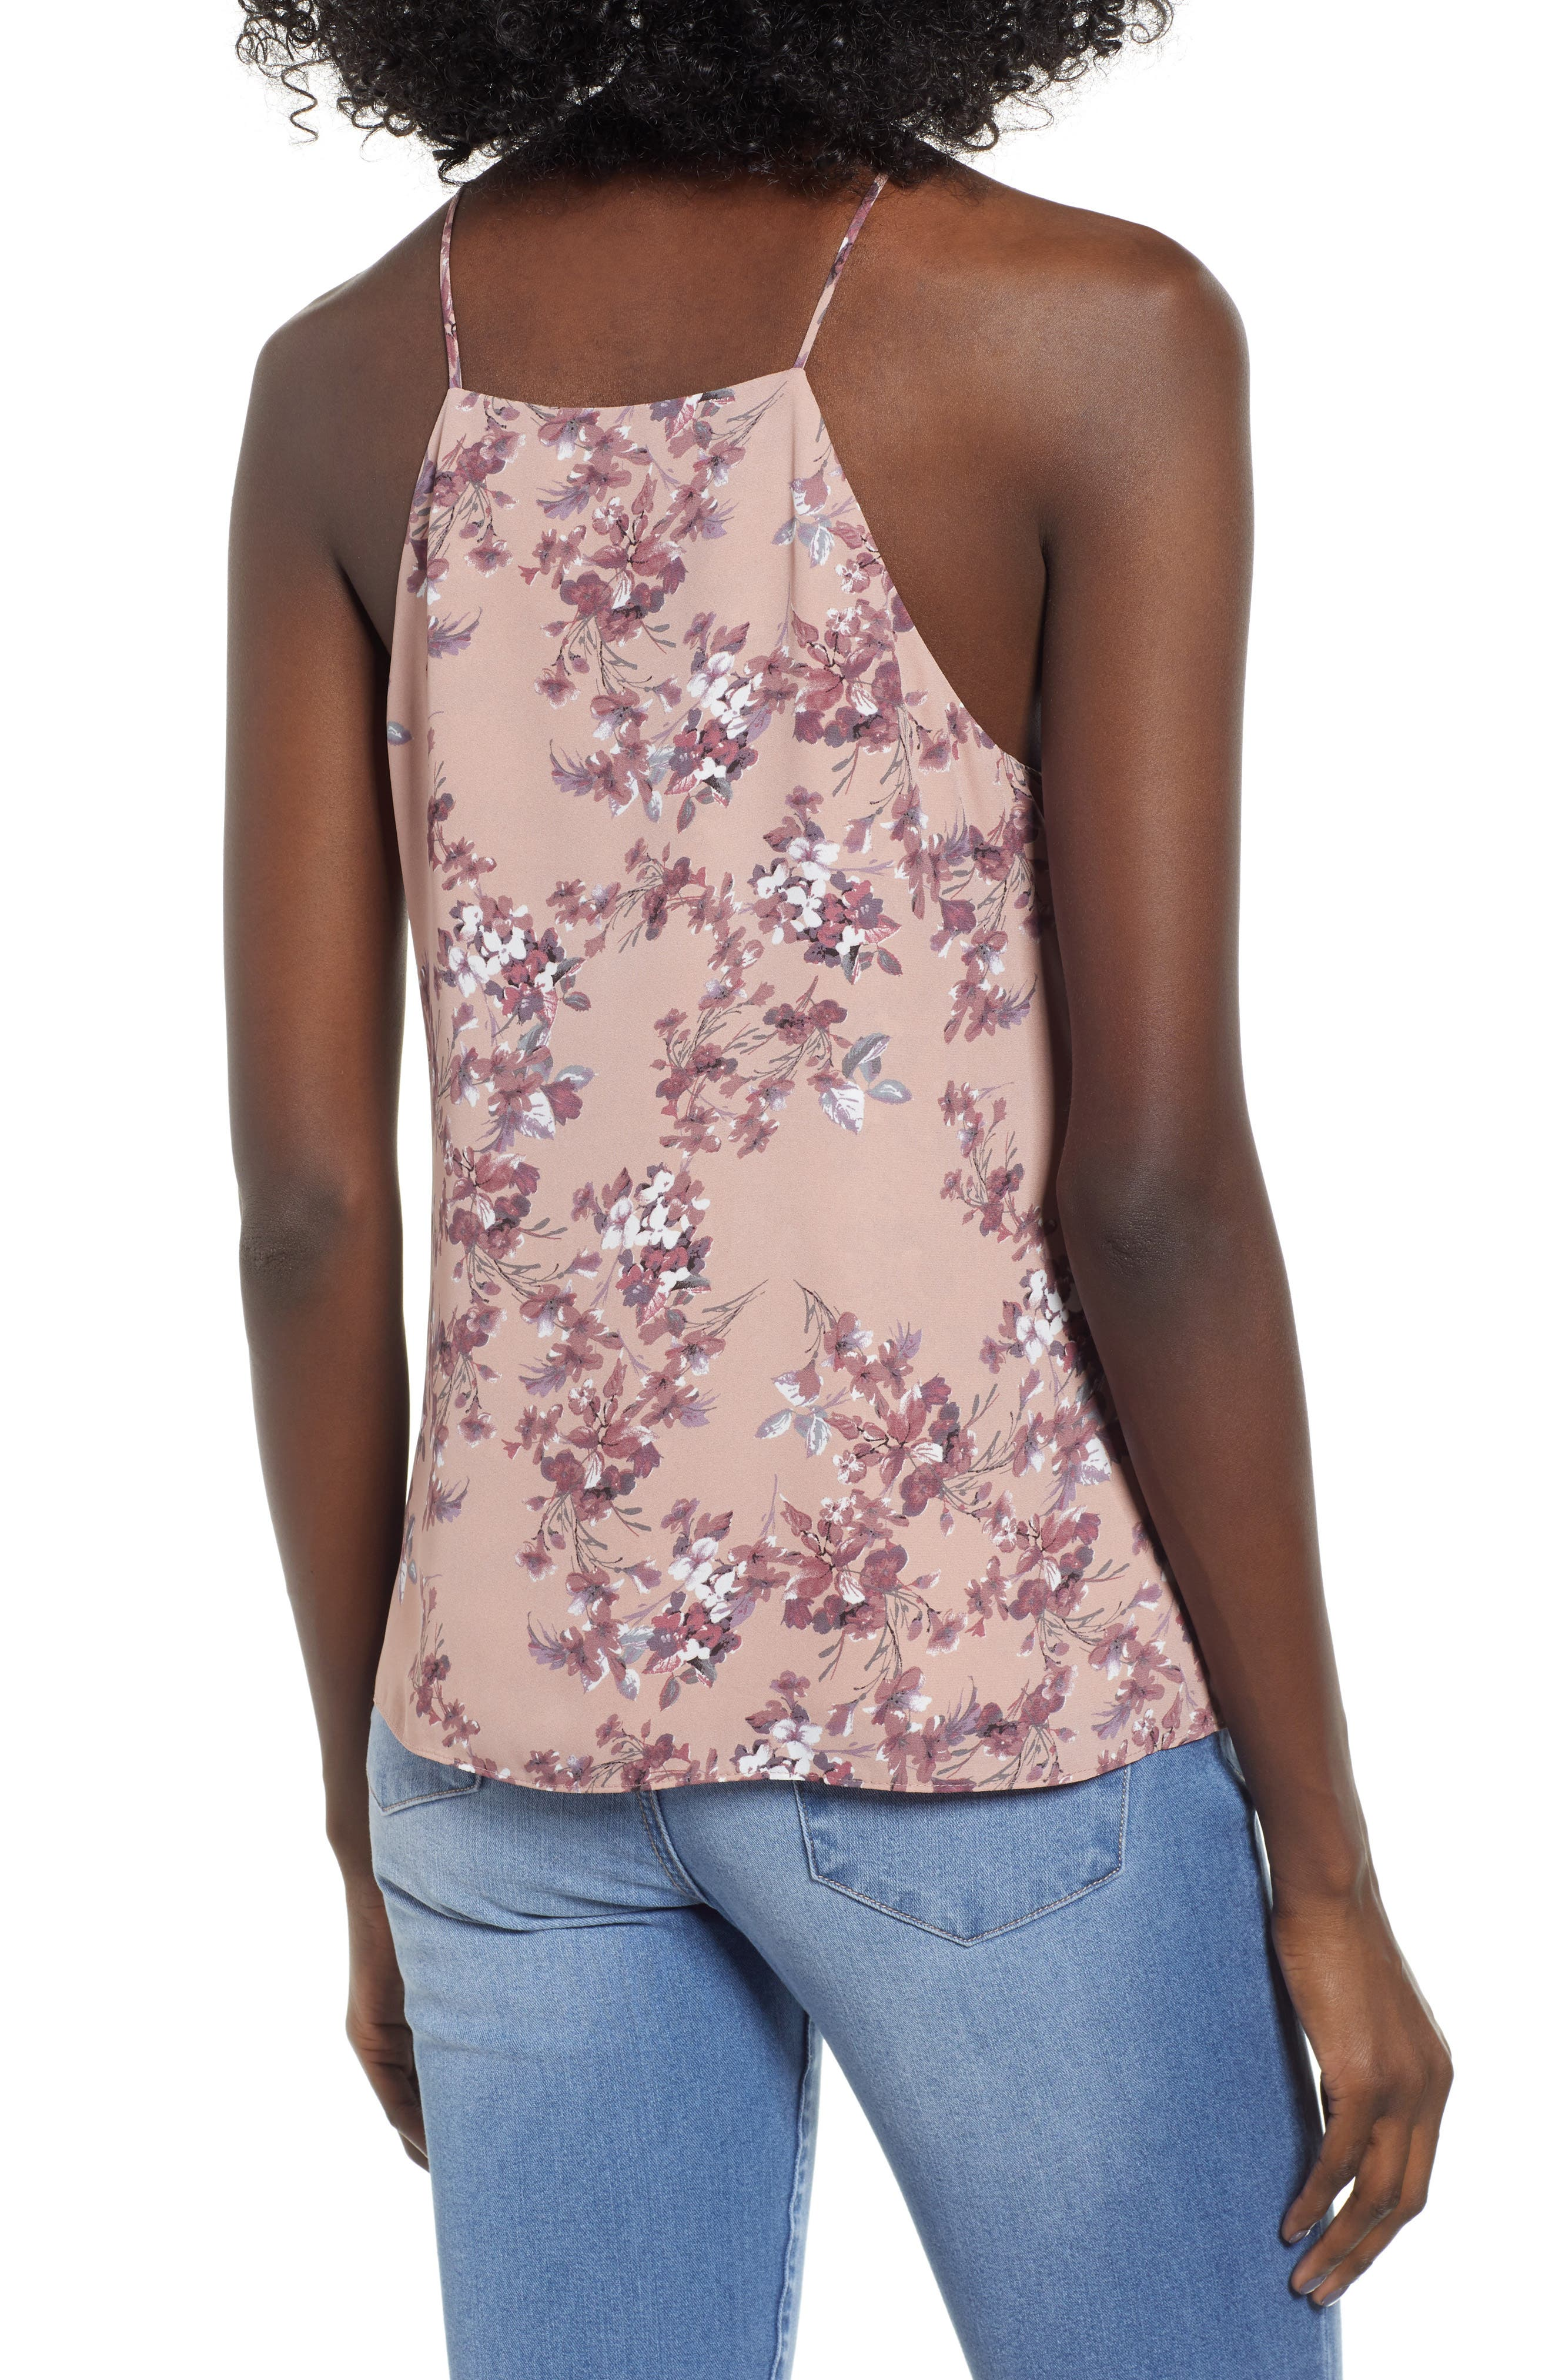 Posie Strappy Camisole,                             Alternate thumbnail 2, color,                             DUSTY MAUVE FLORAL